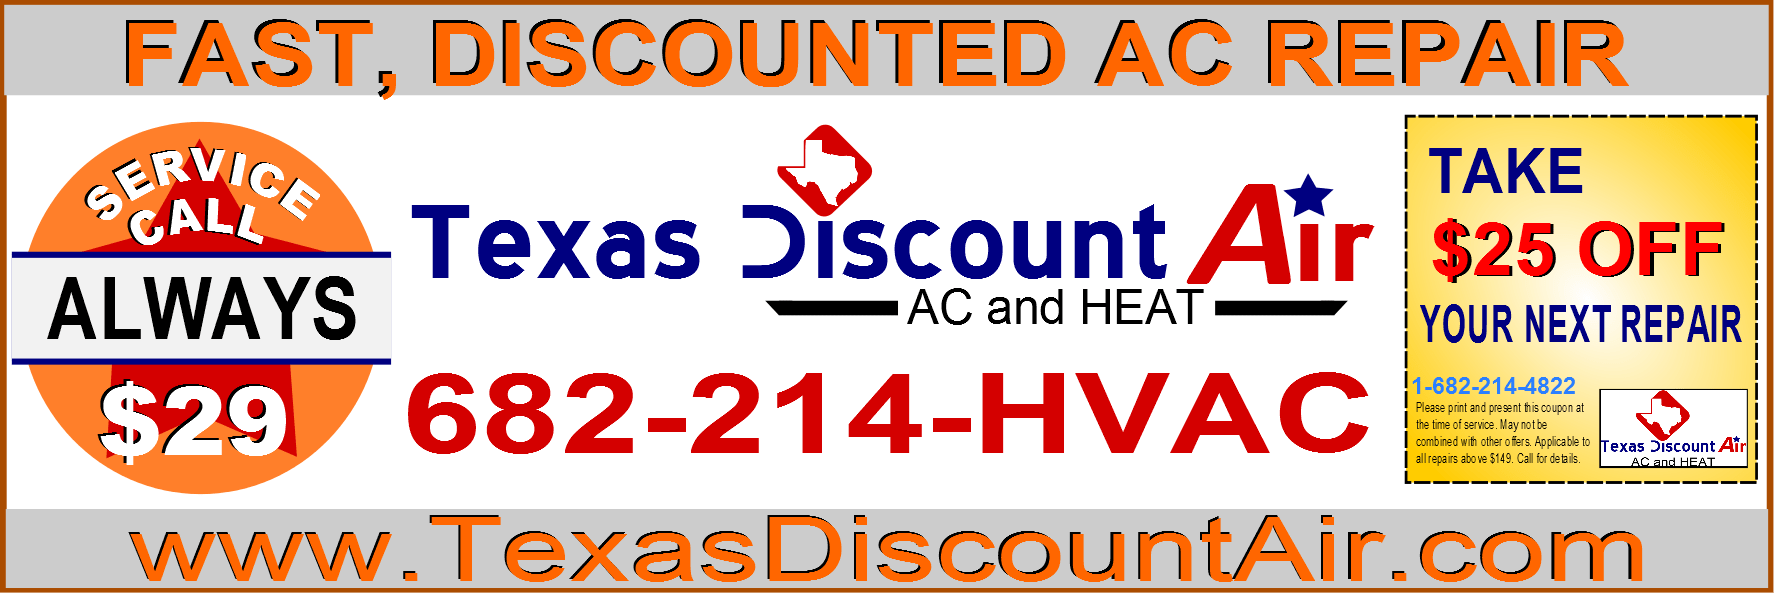 heating repair heater not working coupon for $25 discount